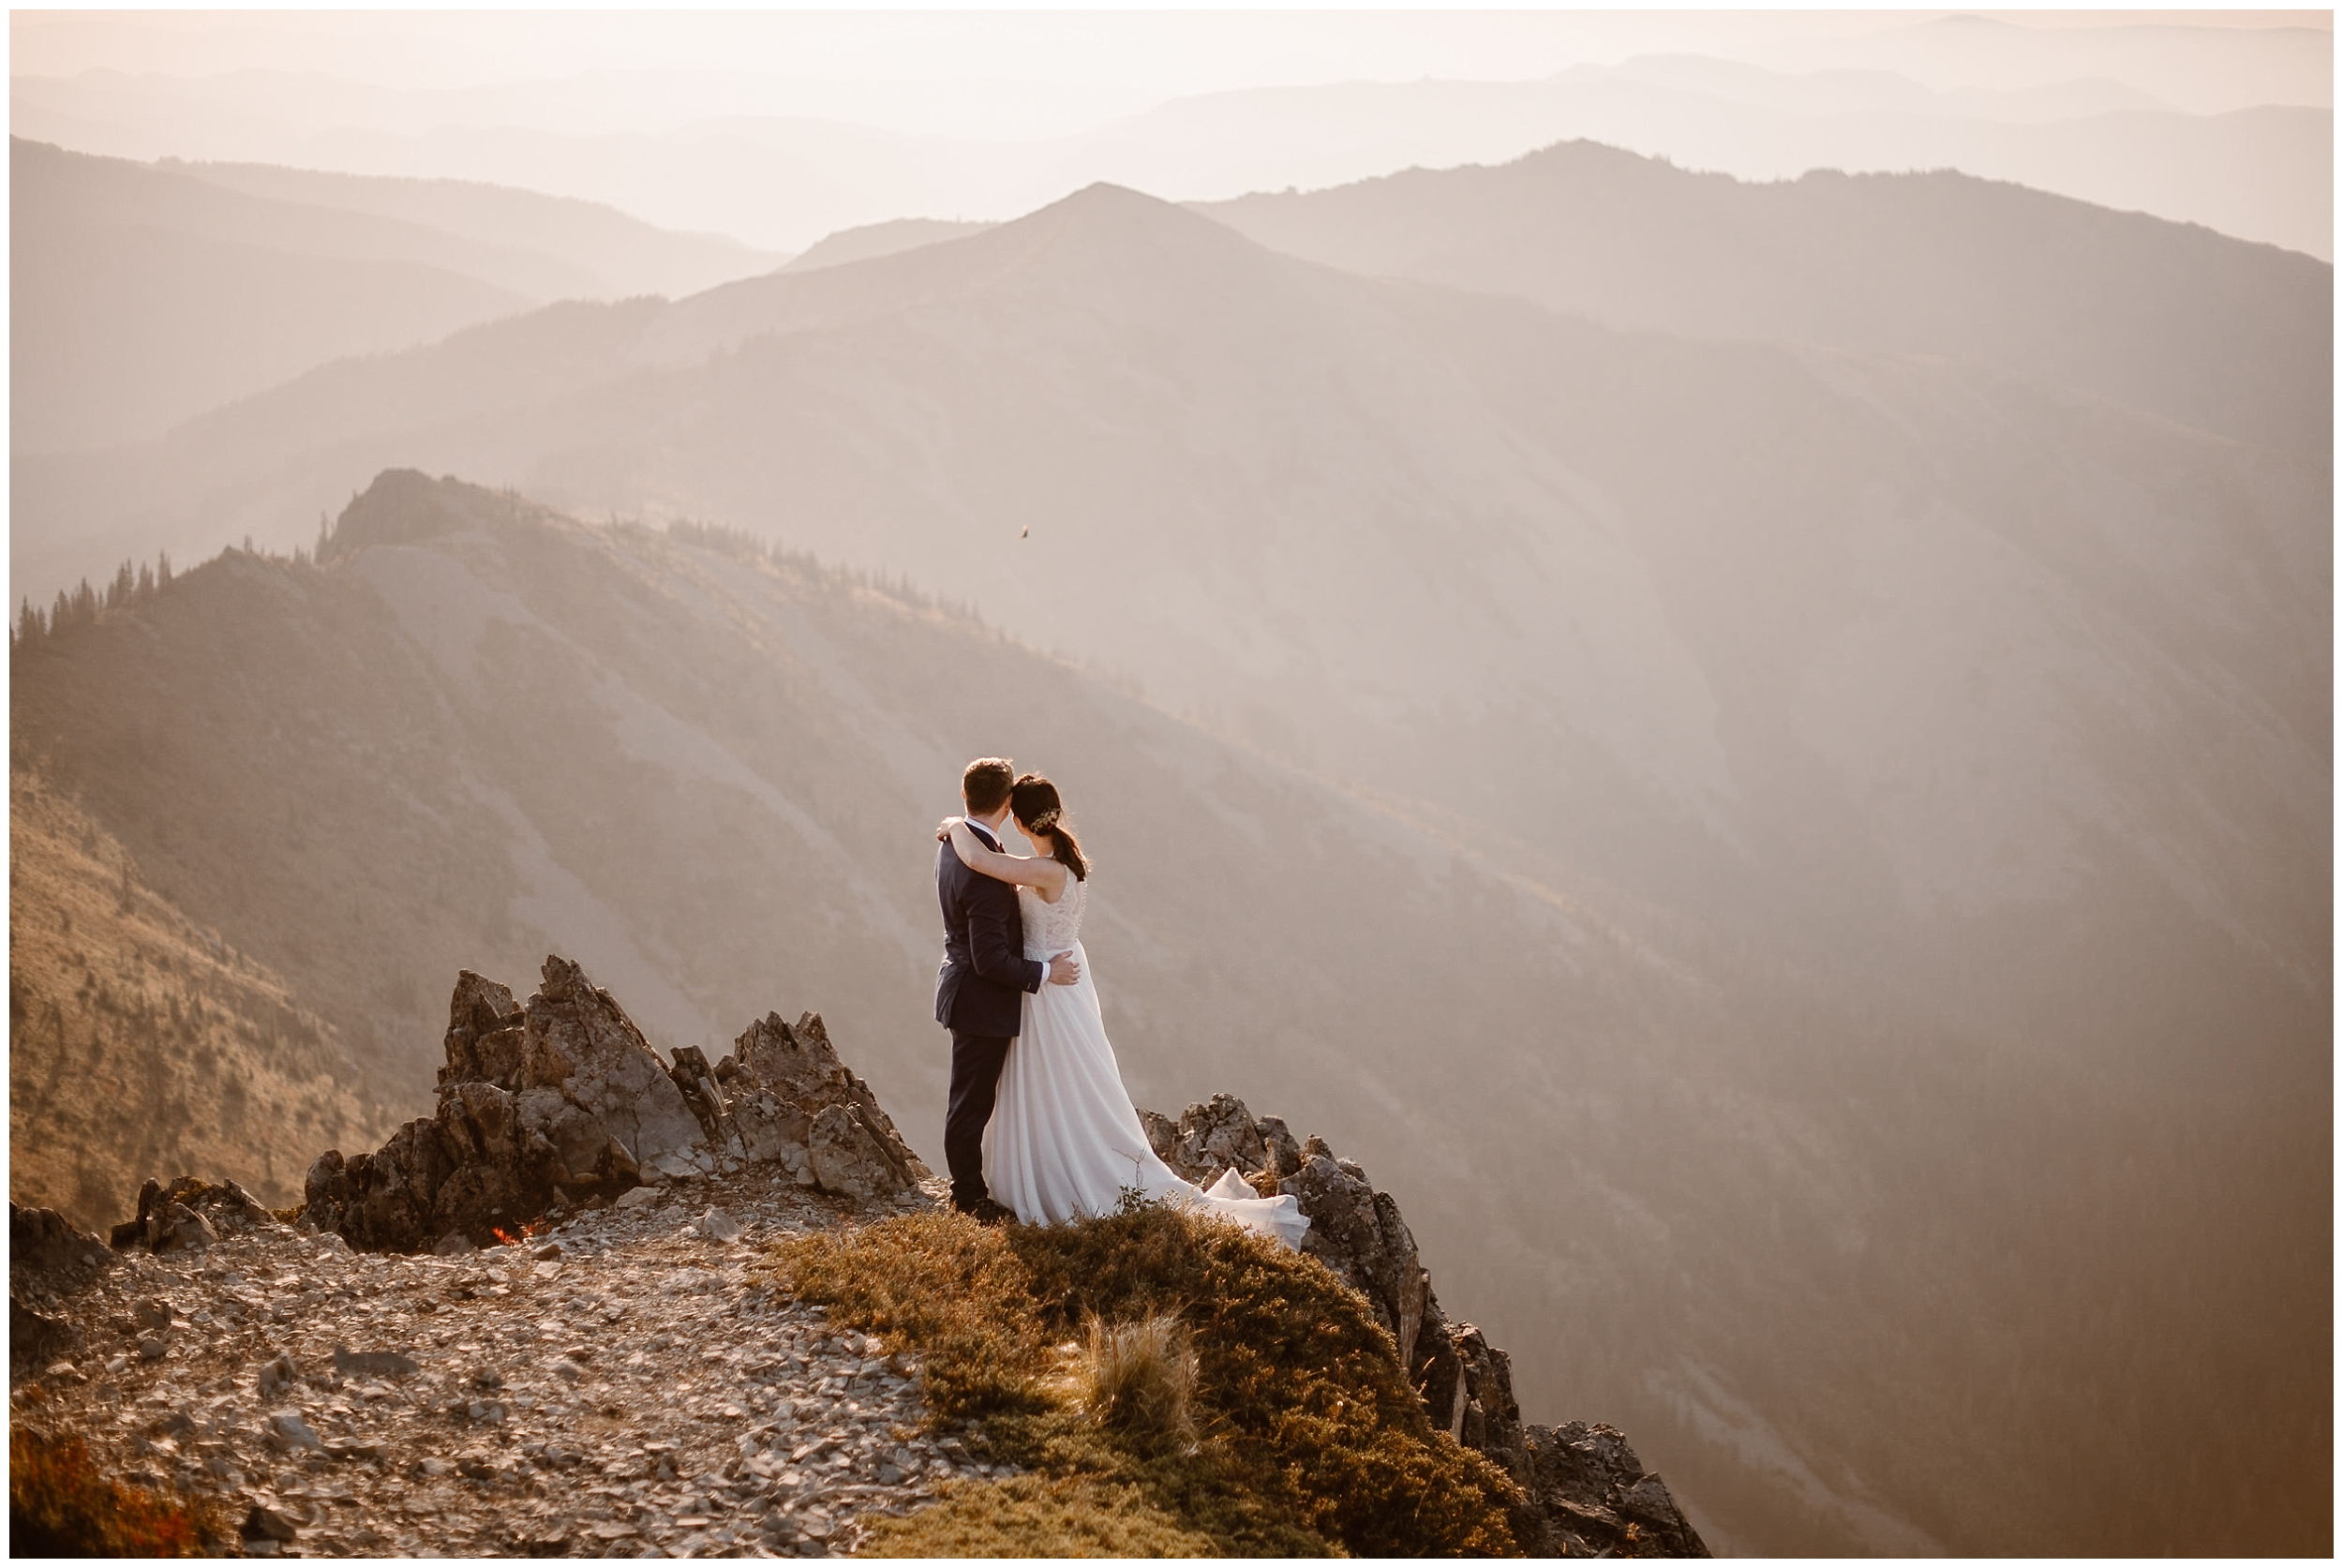 Lauryn and David hold each other close as they look out from the top of the mountain in these elopement photos captured by elopement photographer Adventure Instead.